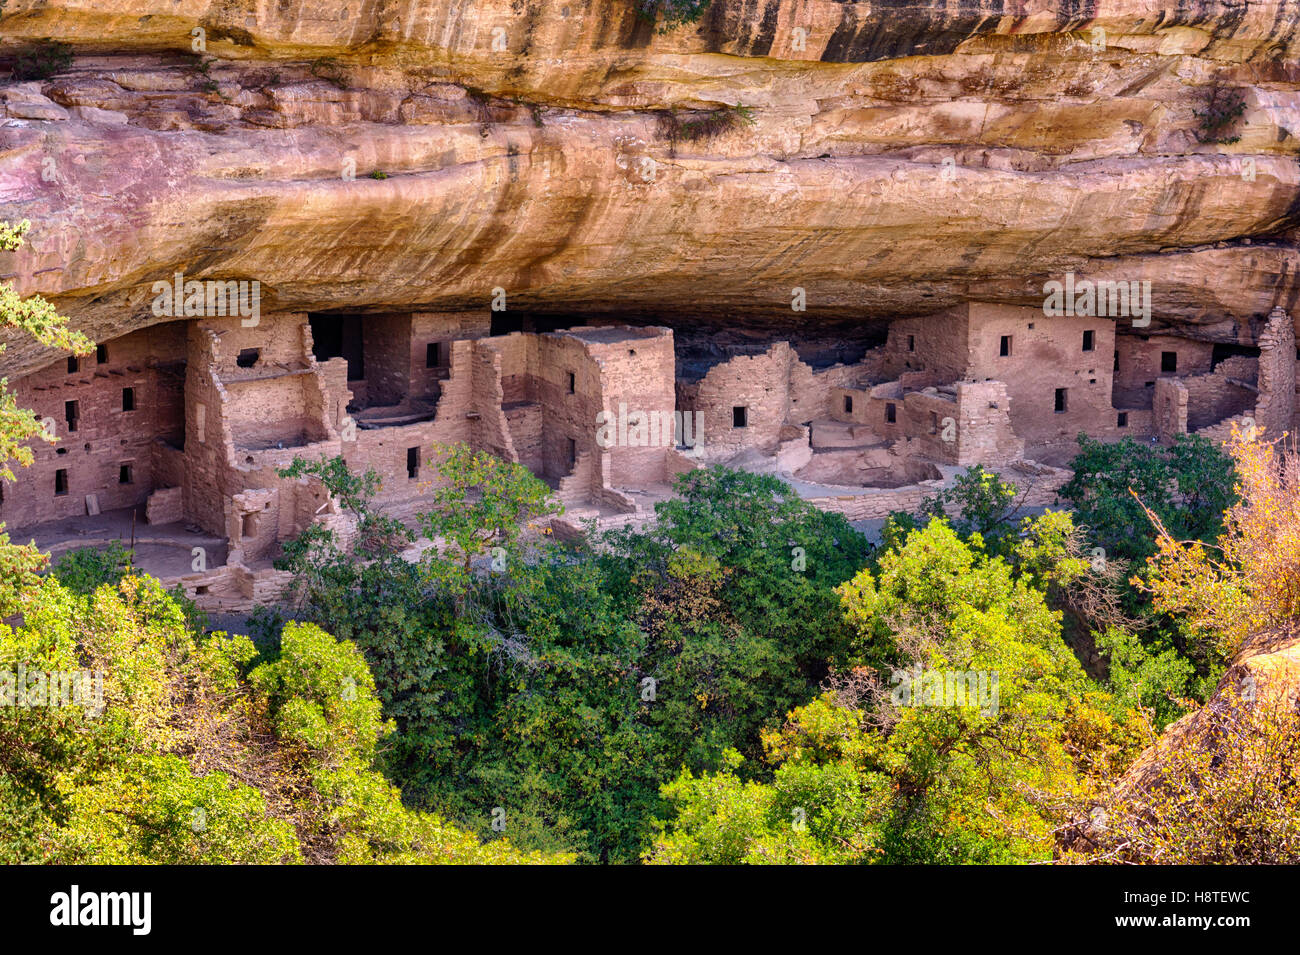 Mesa Verde National Park Colorado USA. Puebloan dwellings in cliff face. - Stock Image